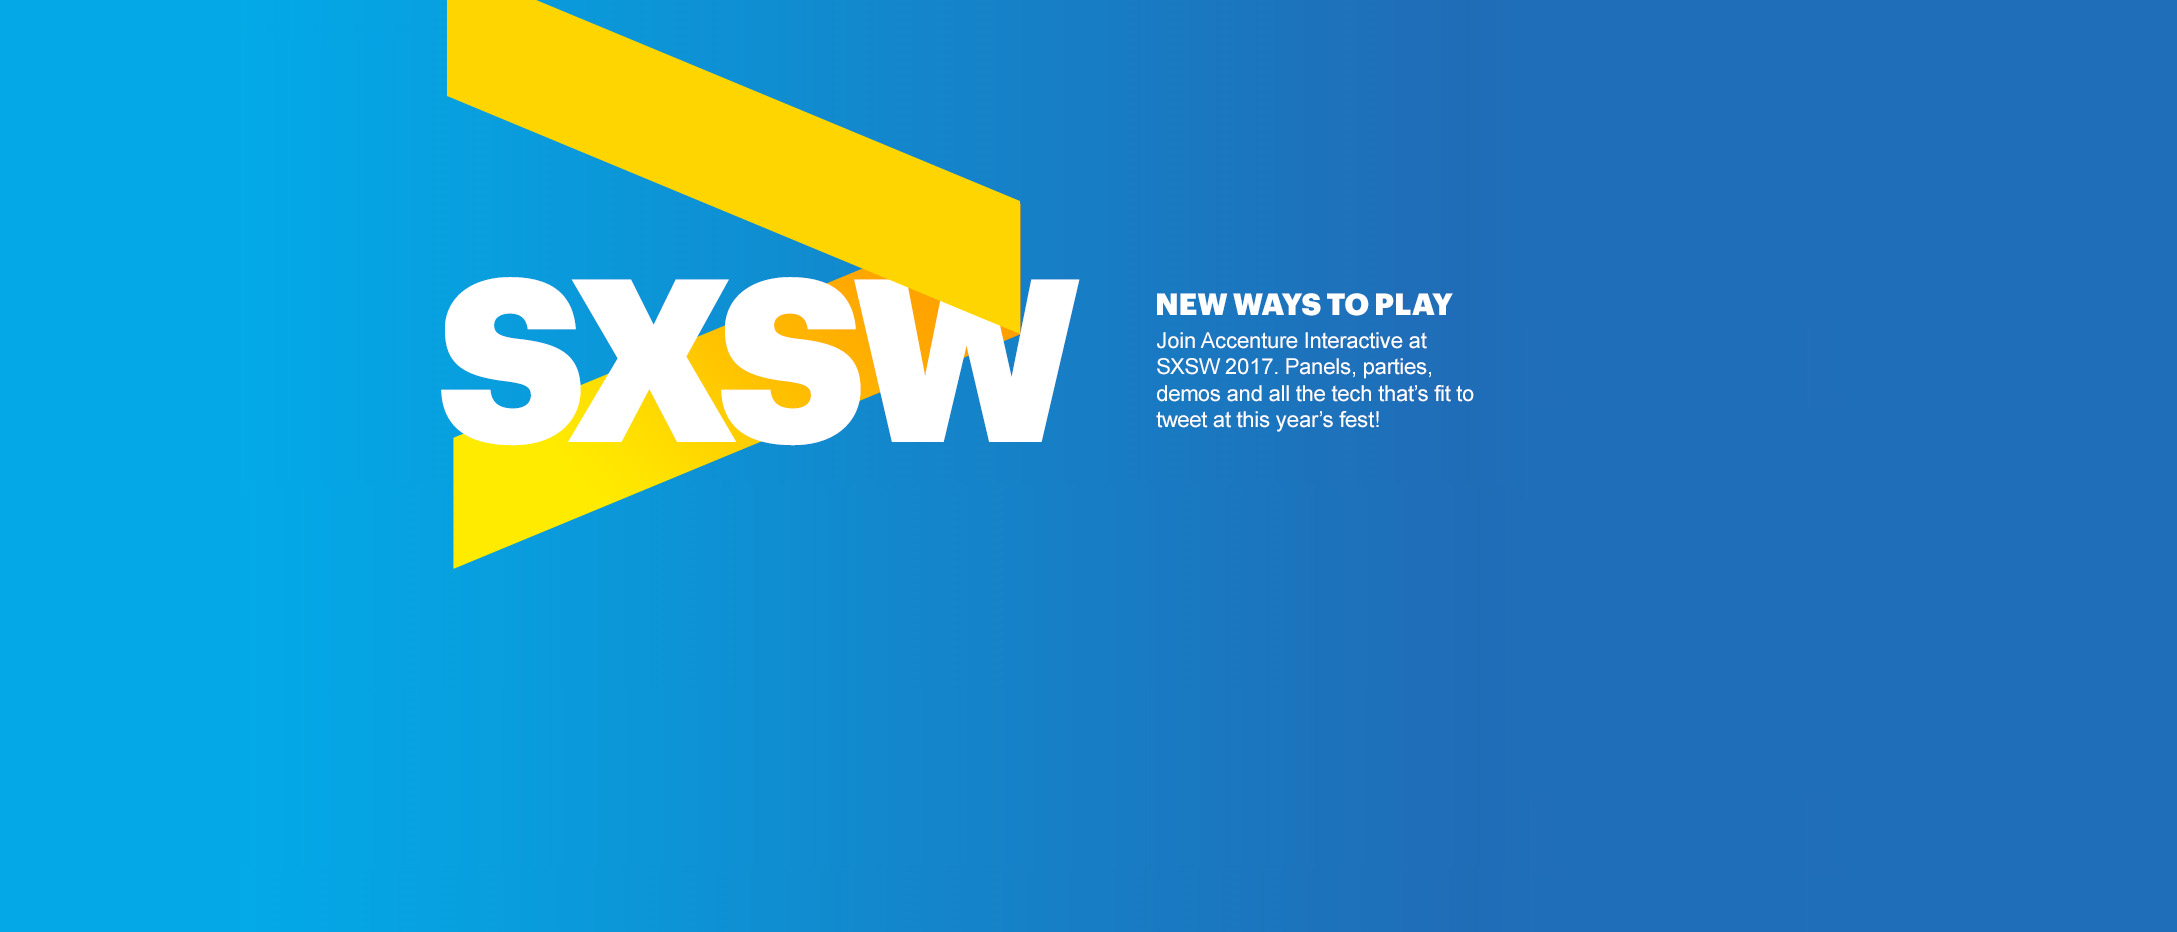 SXSW: New ways to play